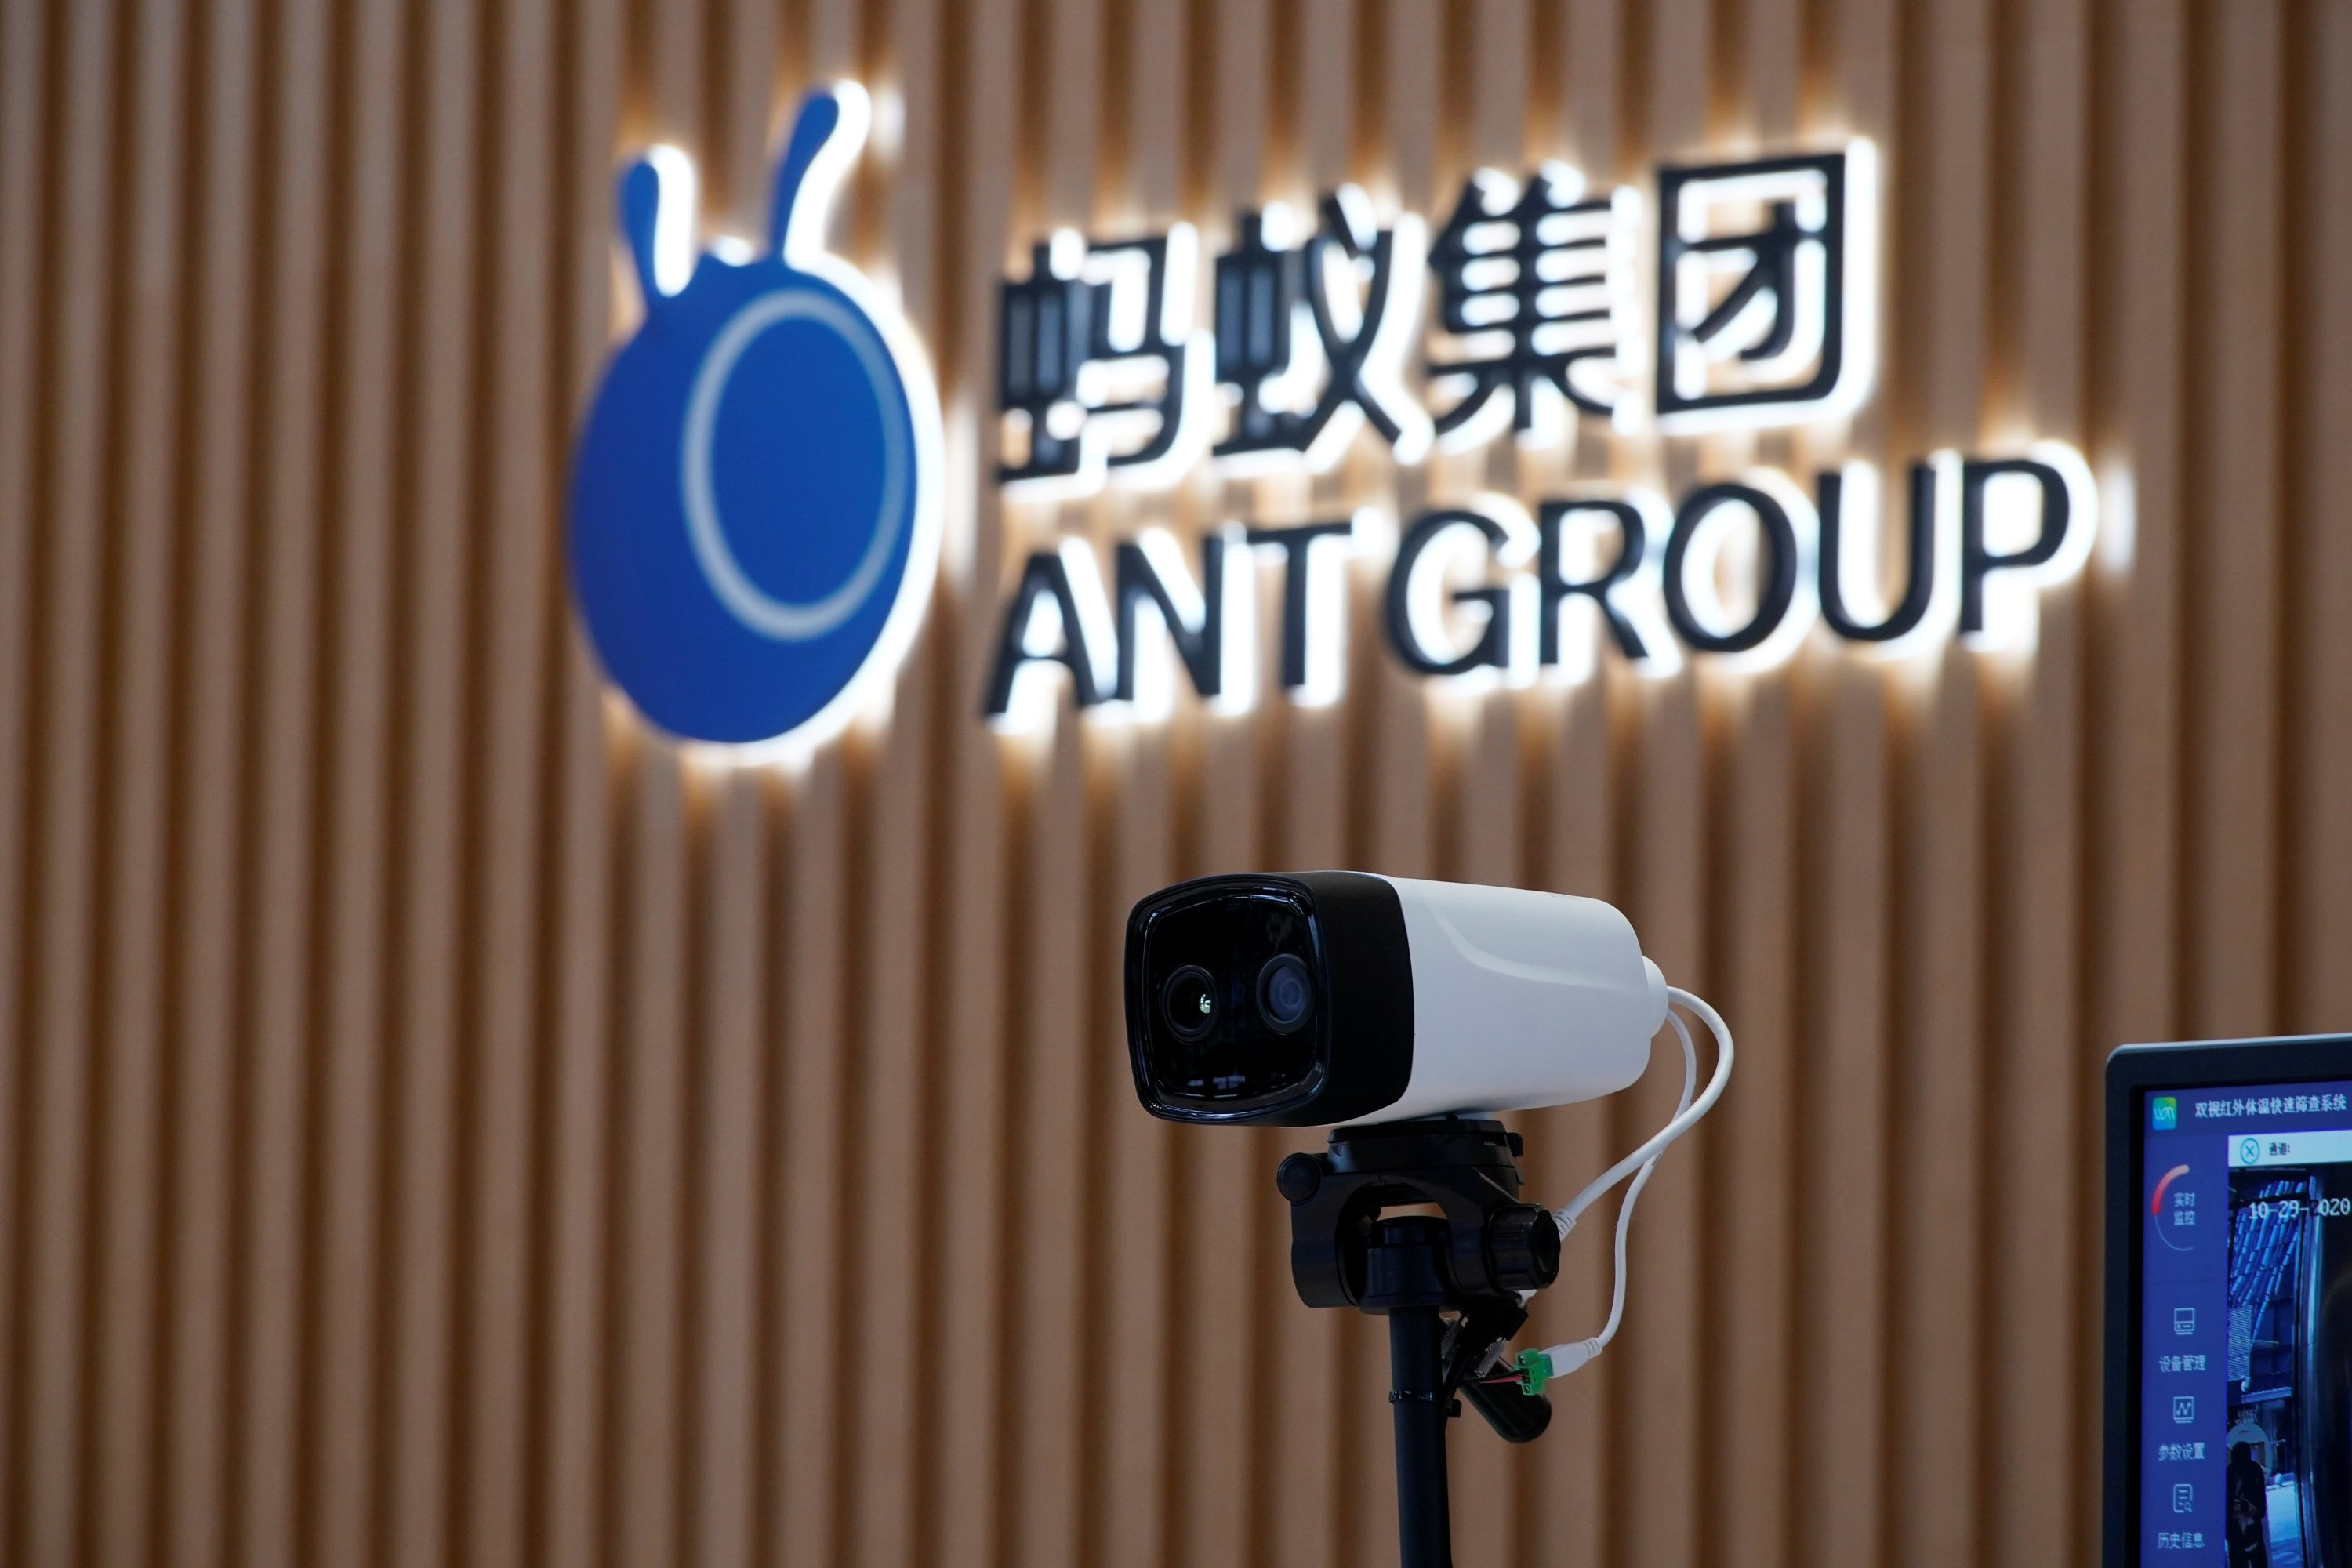 China's central bank urges Ant Group to set 'rectification' plan swiftly thumbnail